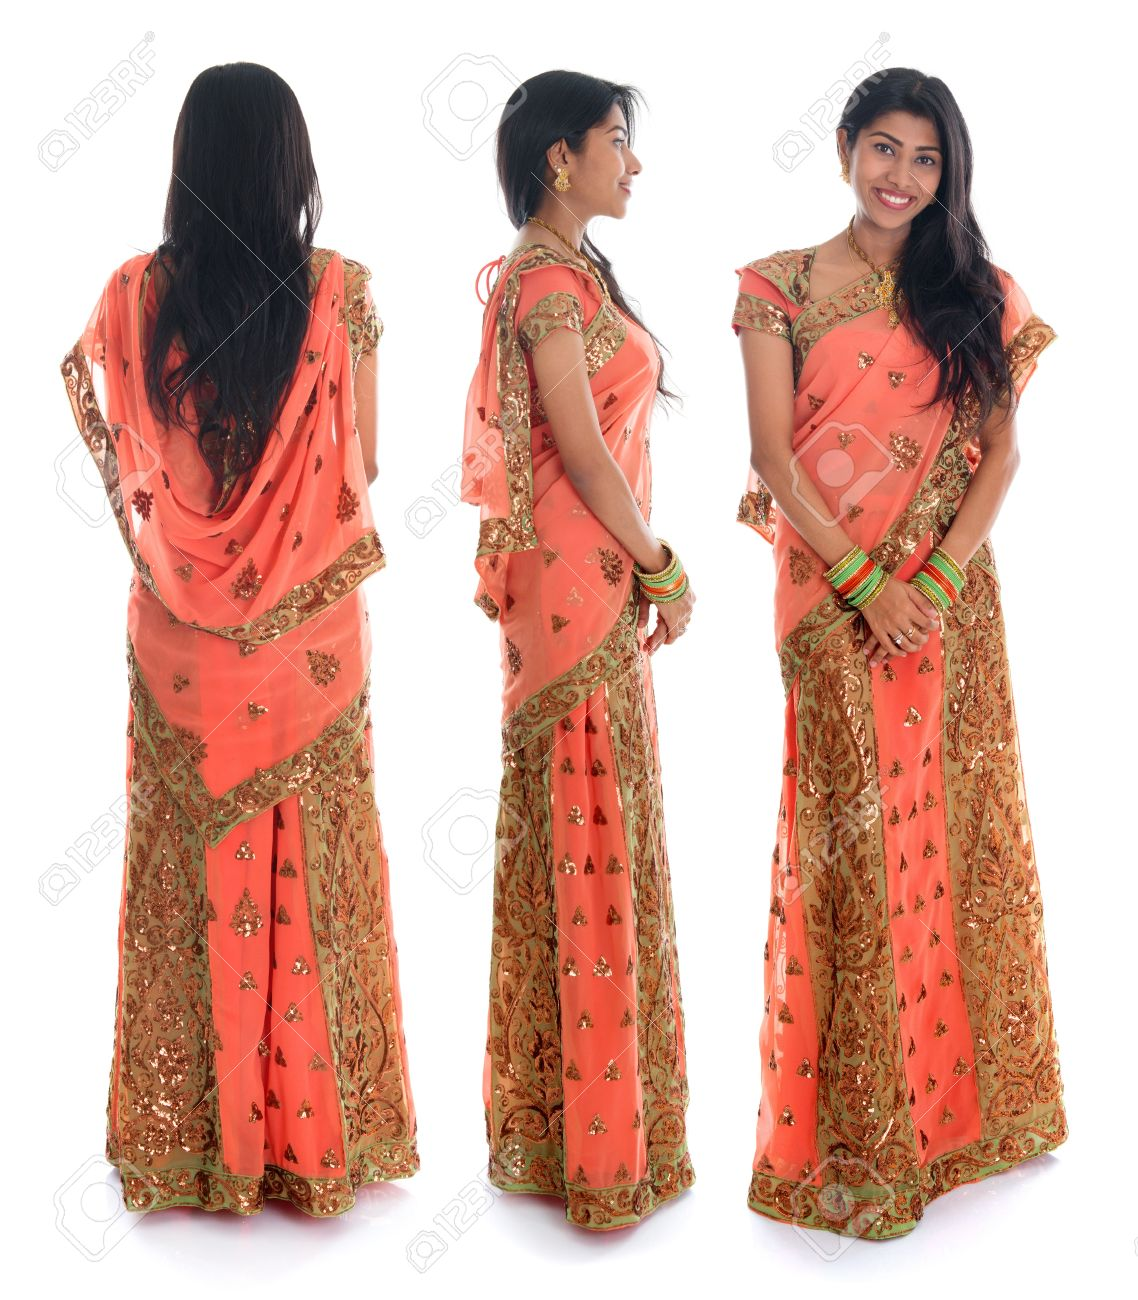 Full body traditional Indian woman in sari costume different angle front side and rear view  sc 1 st  123RF.com & Full Body Traditional Indian Woman In Sari Costume Different.. Stock ...